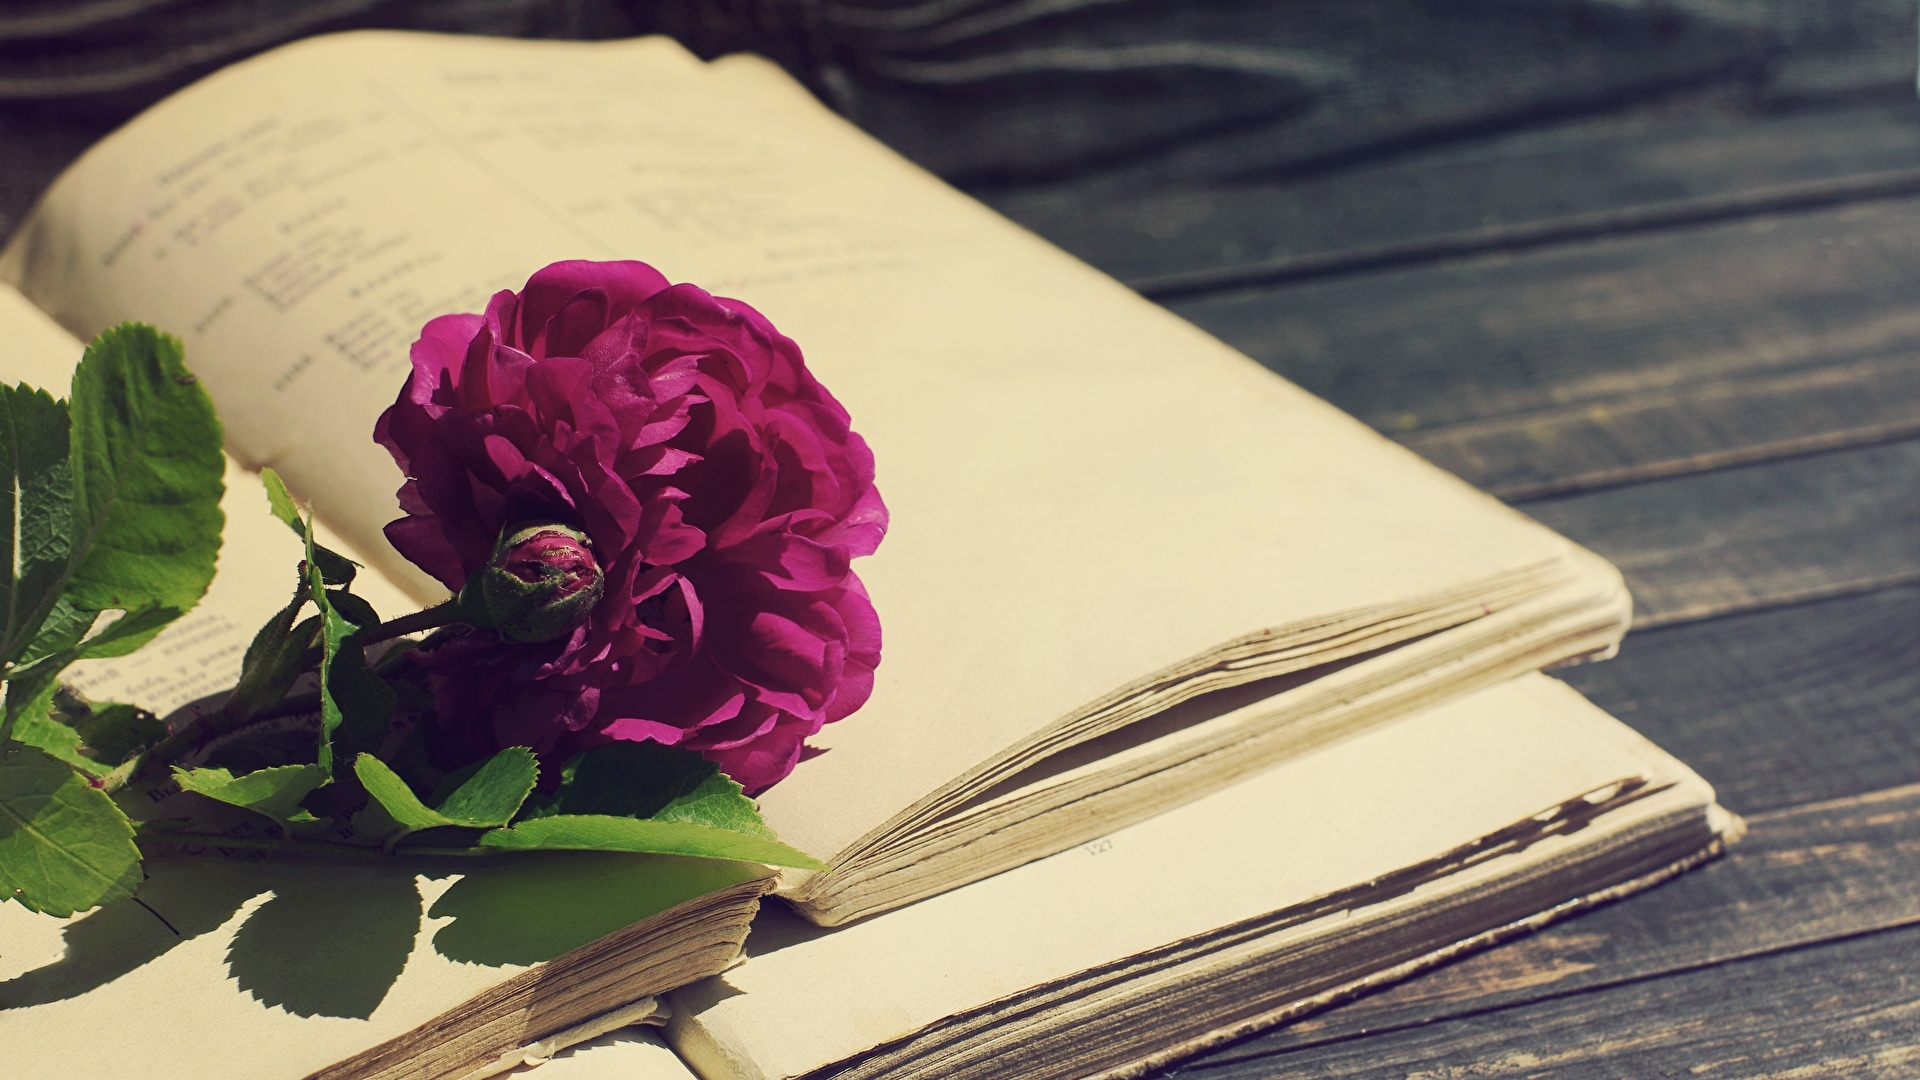 Book And Flower wallpaper for pc